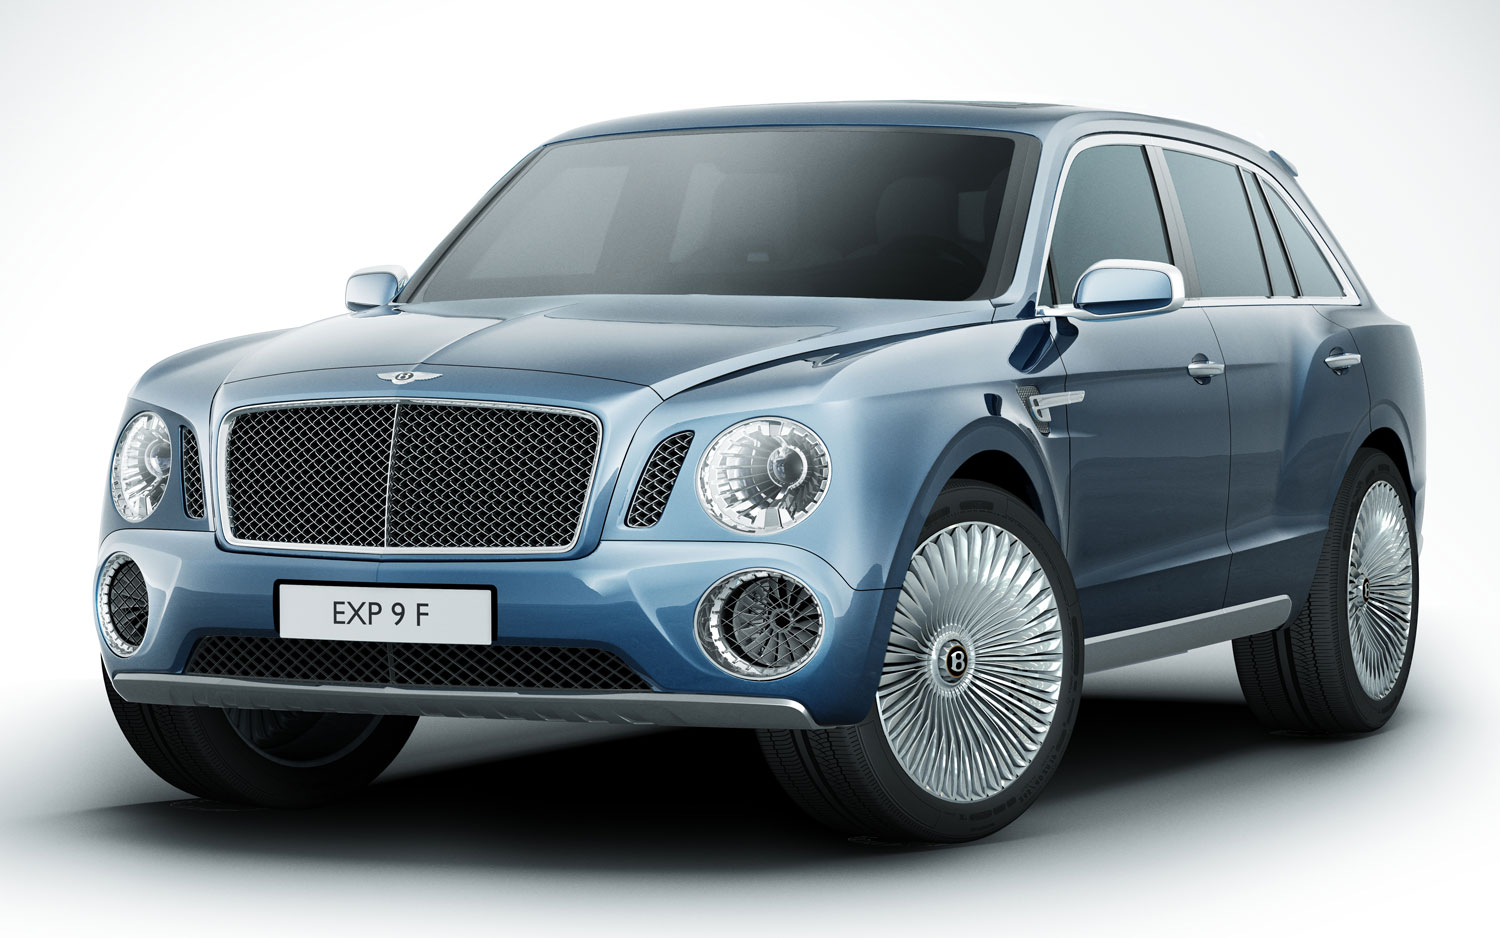 Bentley EXP 9 F SUV Concept Front Three Quarters View1